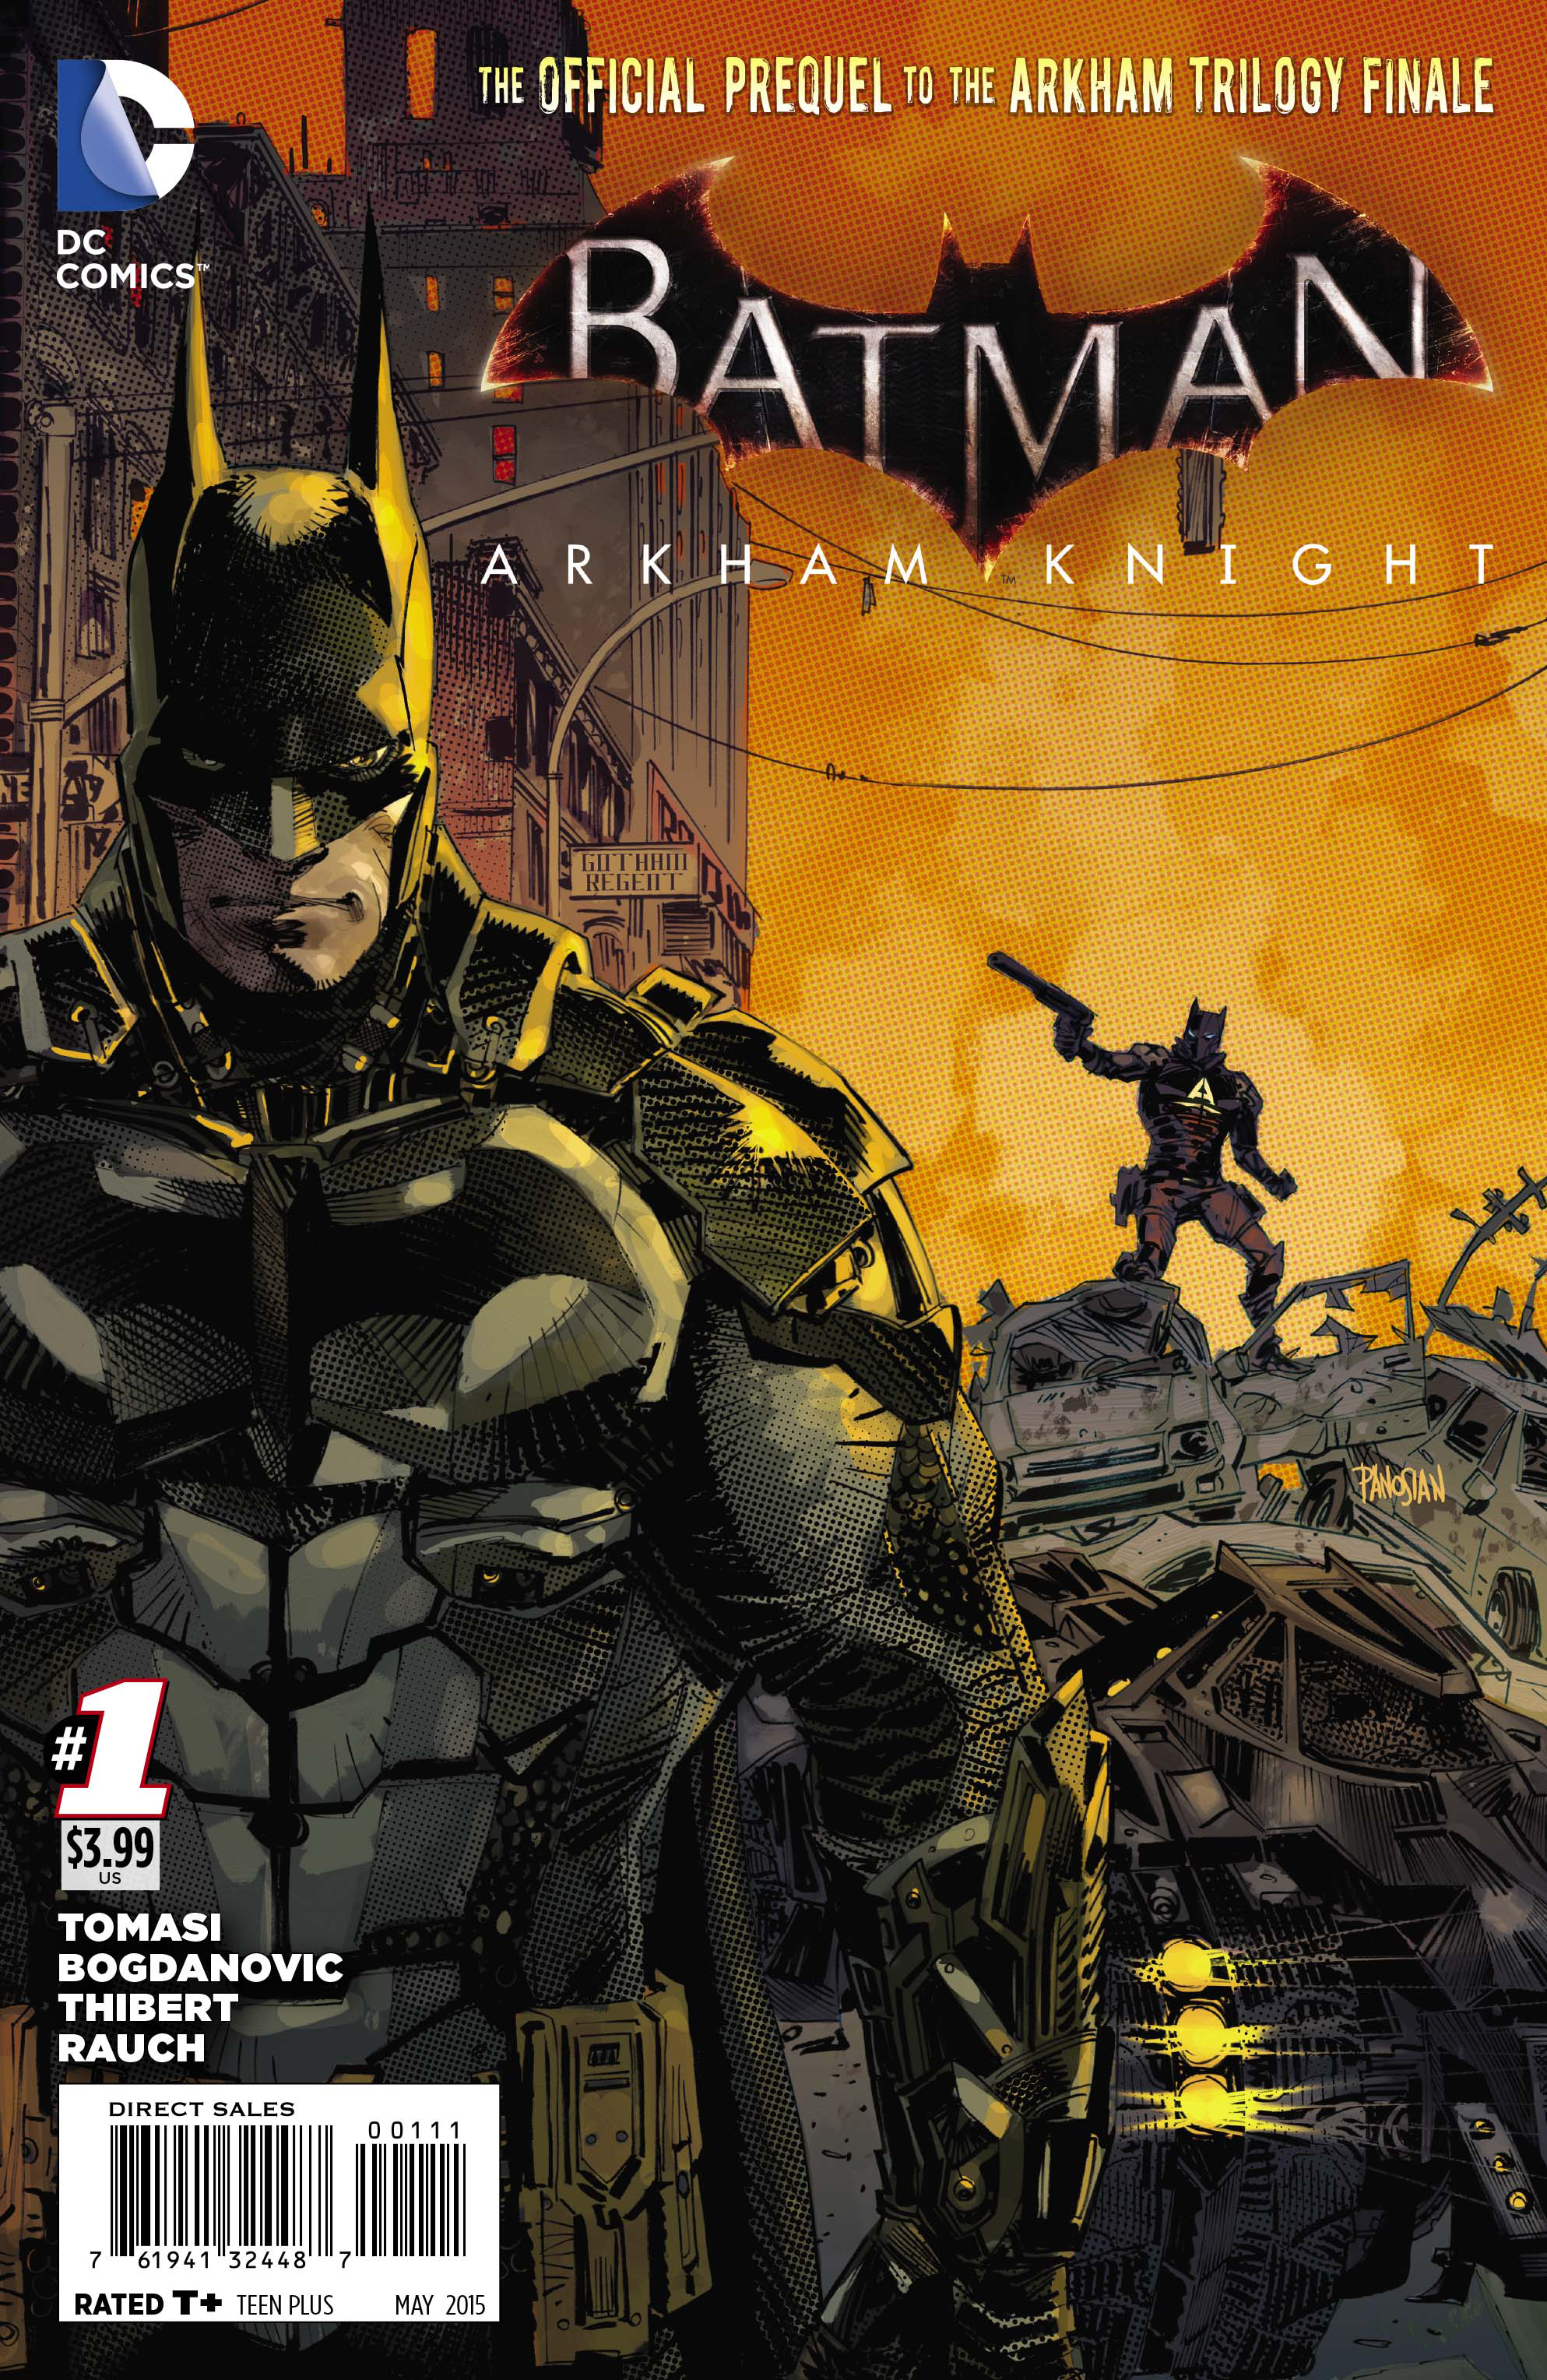 BATMAN ARKHAM KNIGHT #1